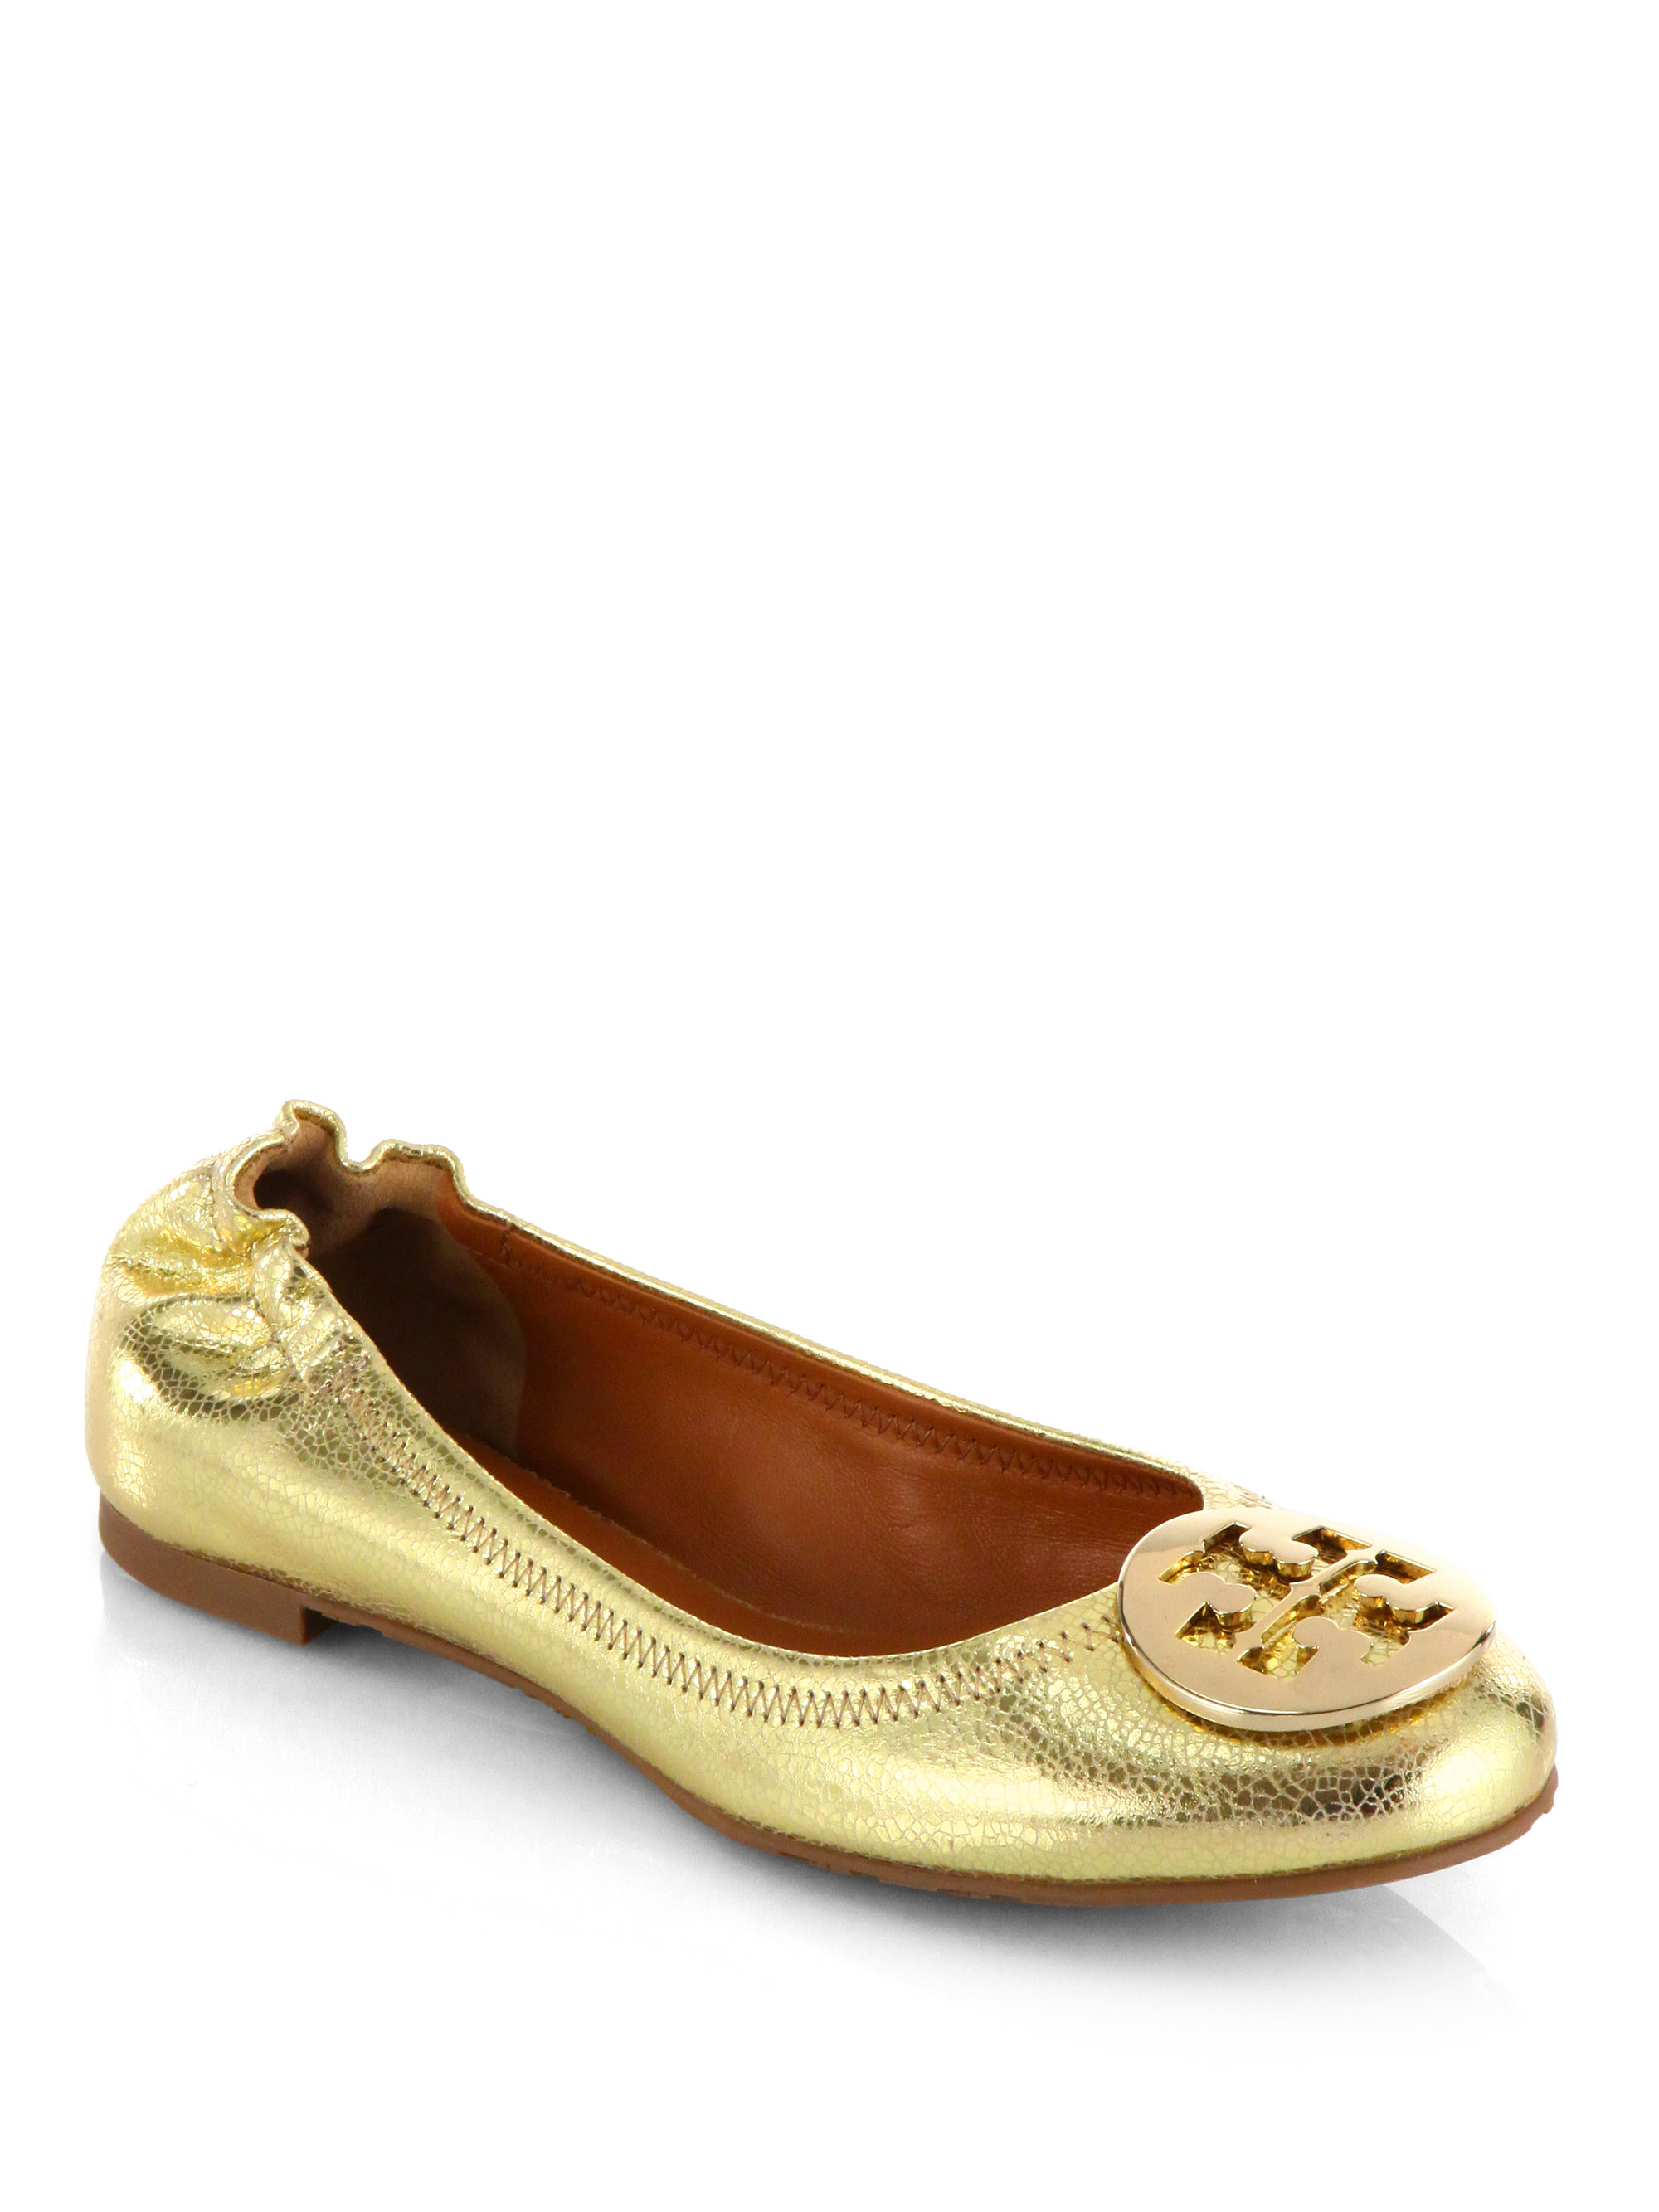 2665fa3ba3a1c Lyst - Tory Burch Reva Crackled Metallic Leather Ballet Flats in ...